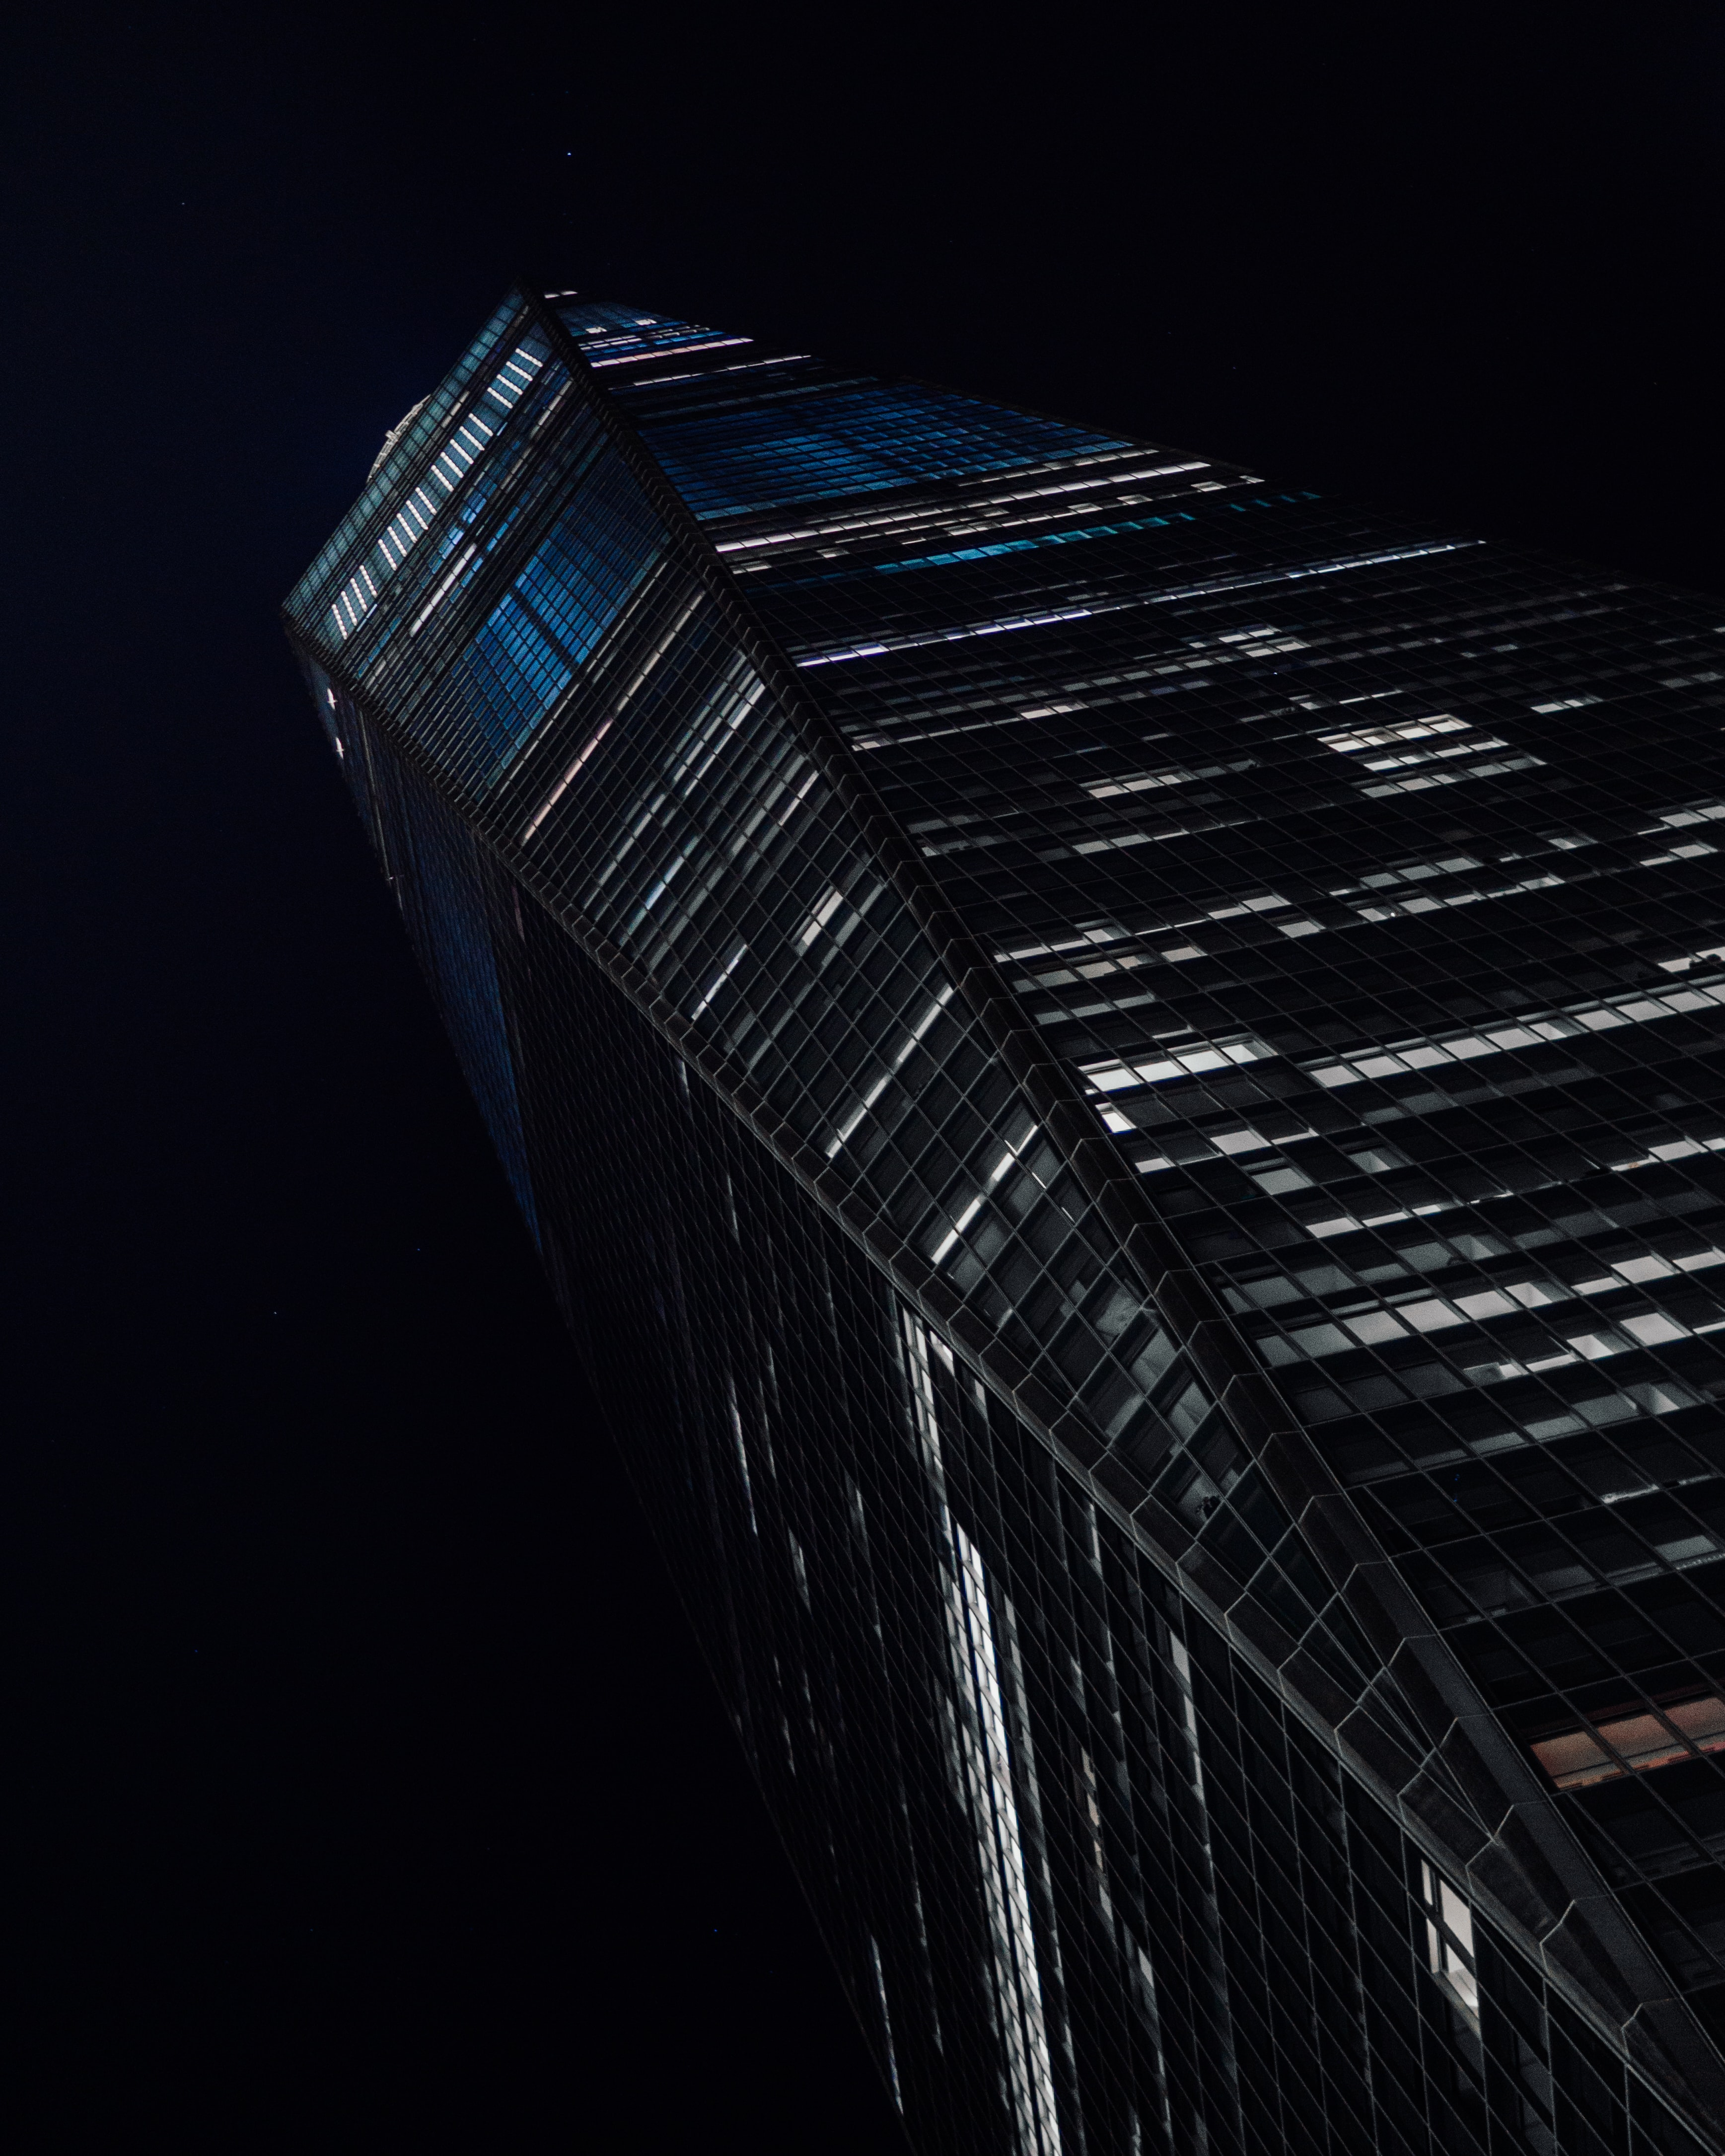 low-angle photography of high-rise building at nighttime